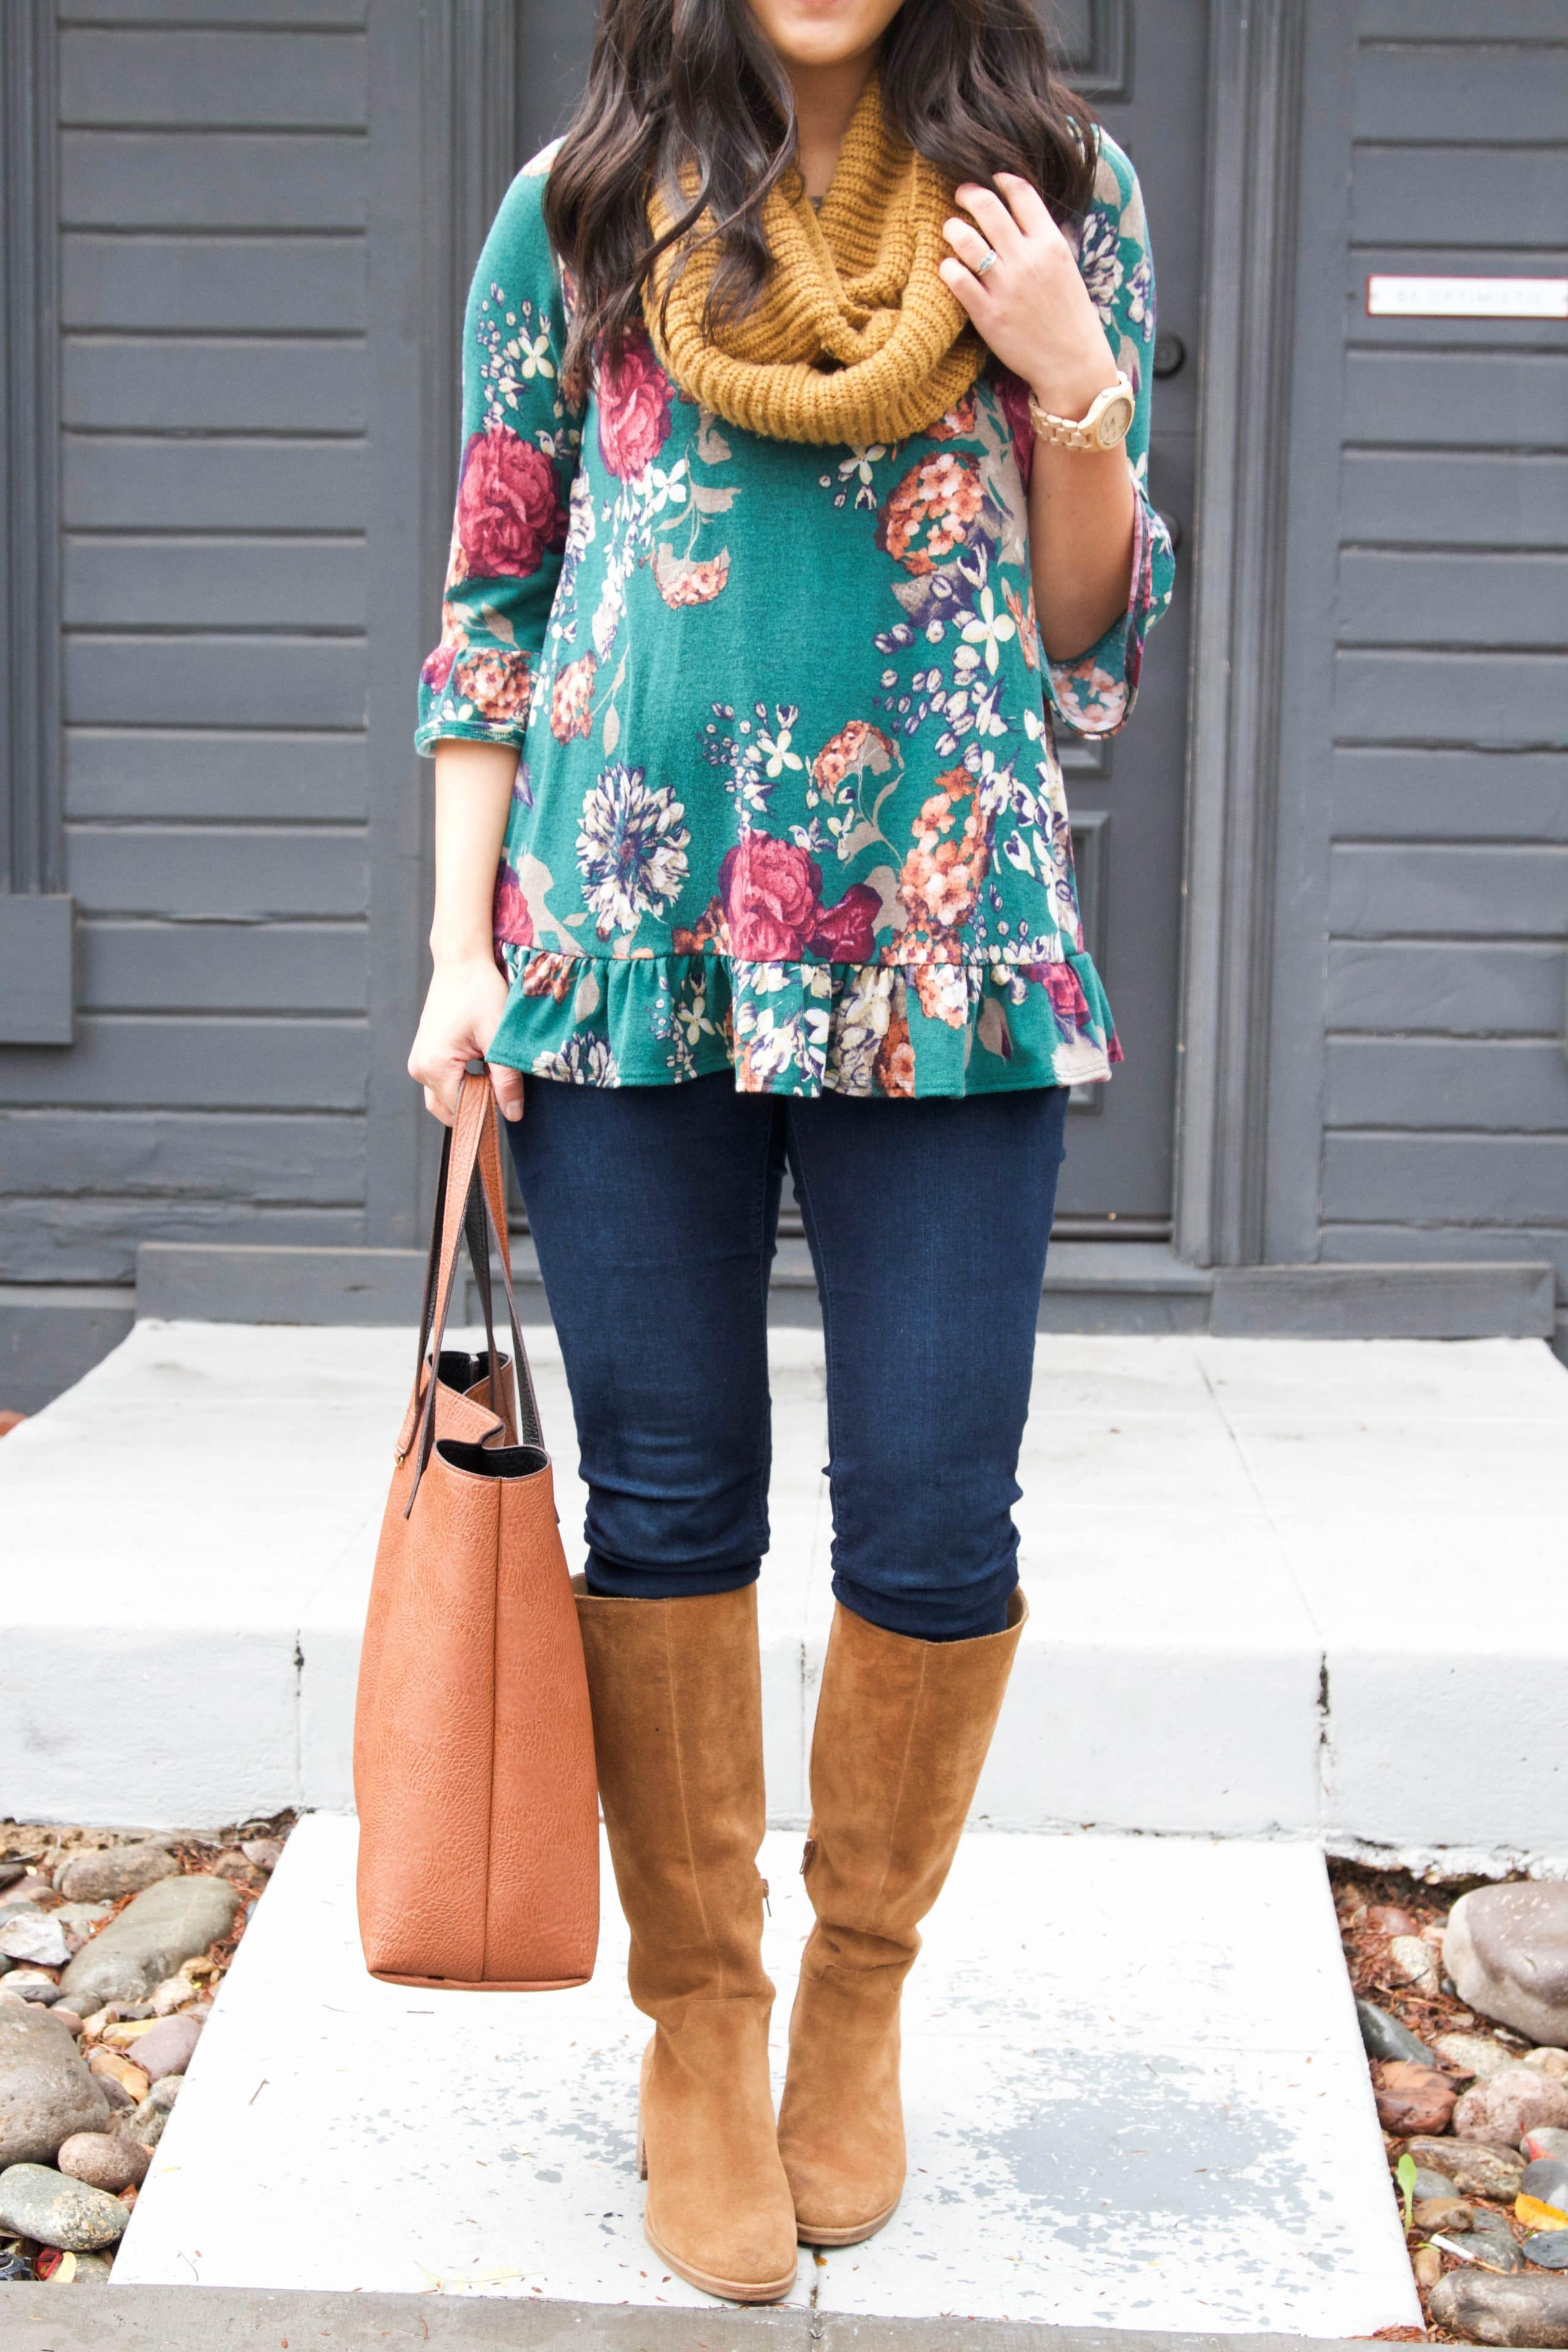 Floral Top + Infinity Scarf + Jord Watch + Suede Boots + Tote